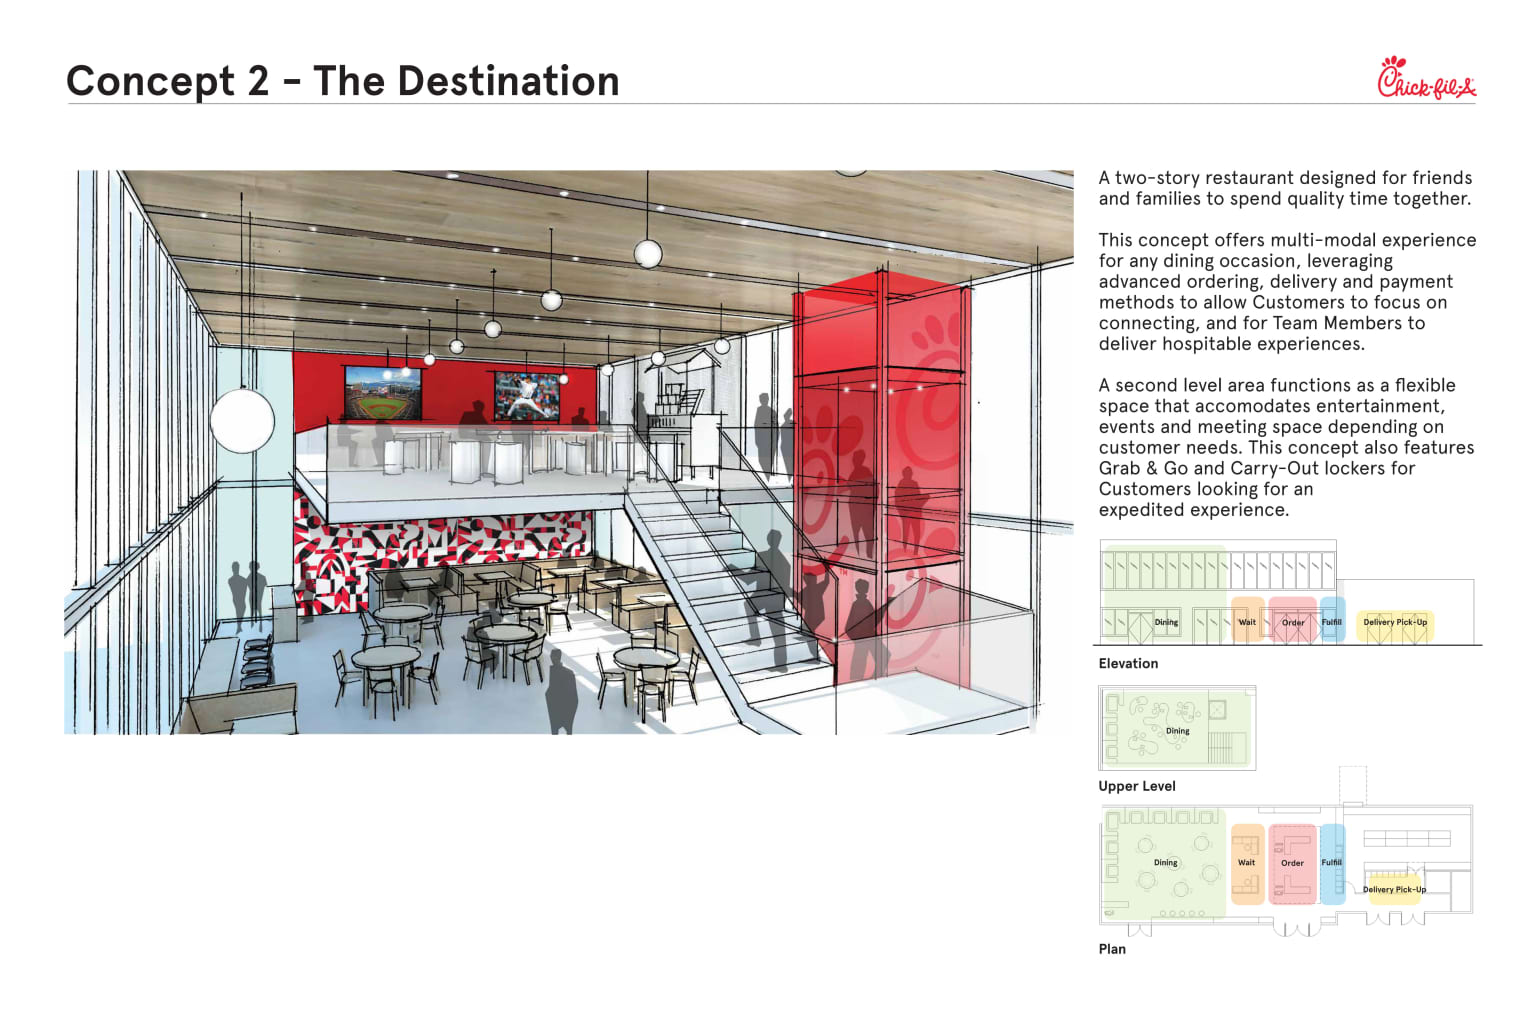 Chick-fil-A restaurant of the future concepts